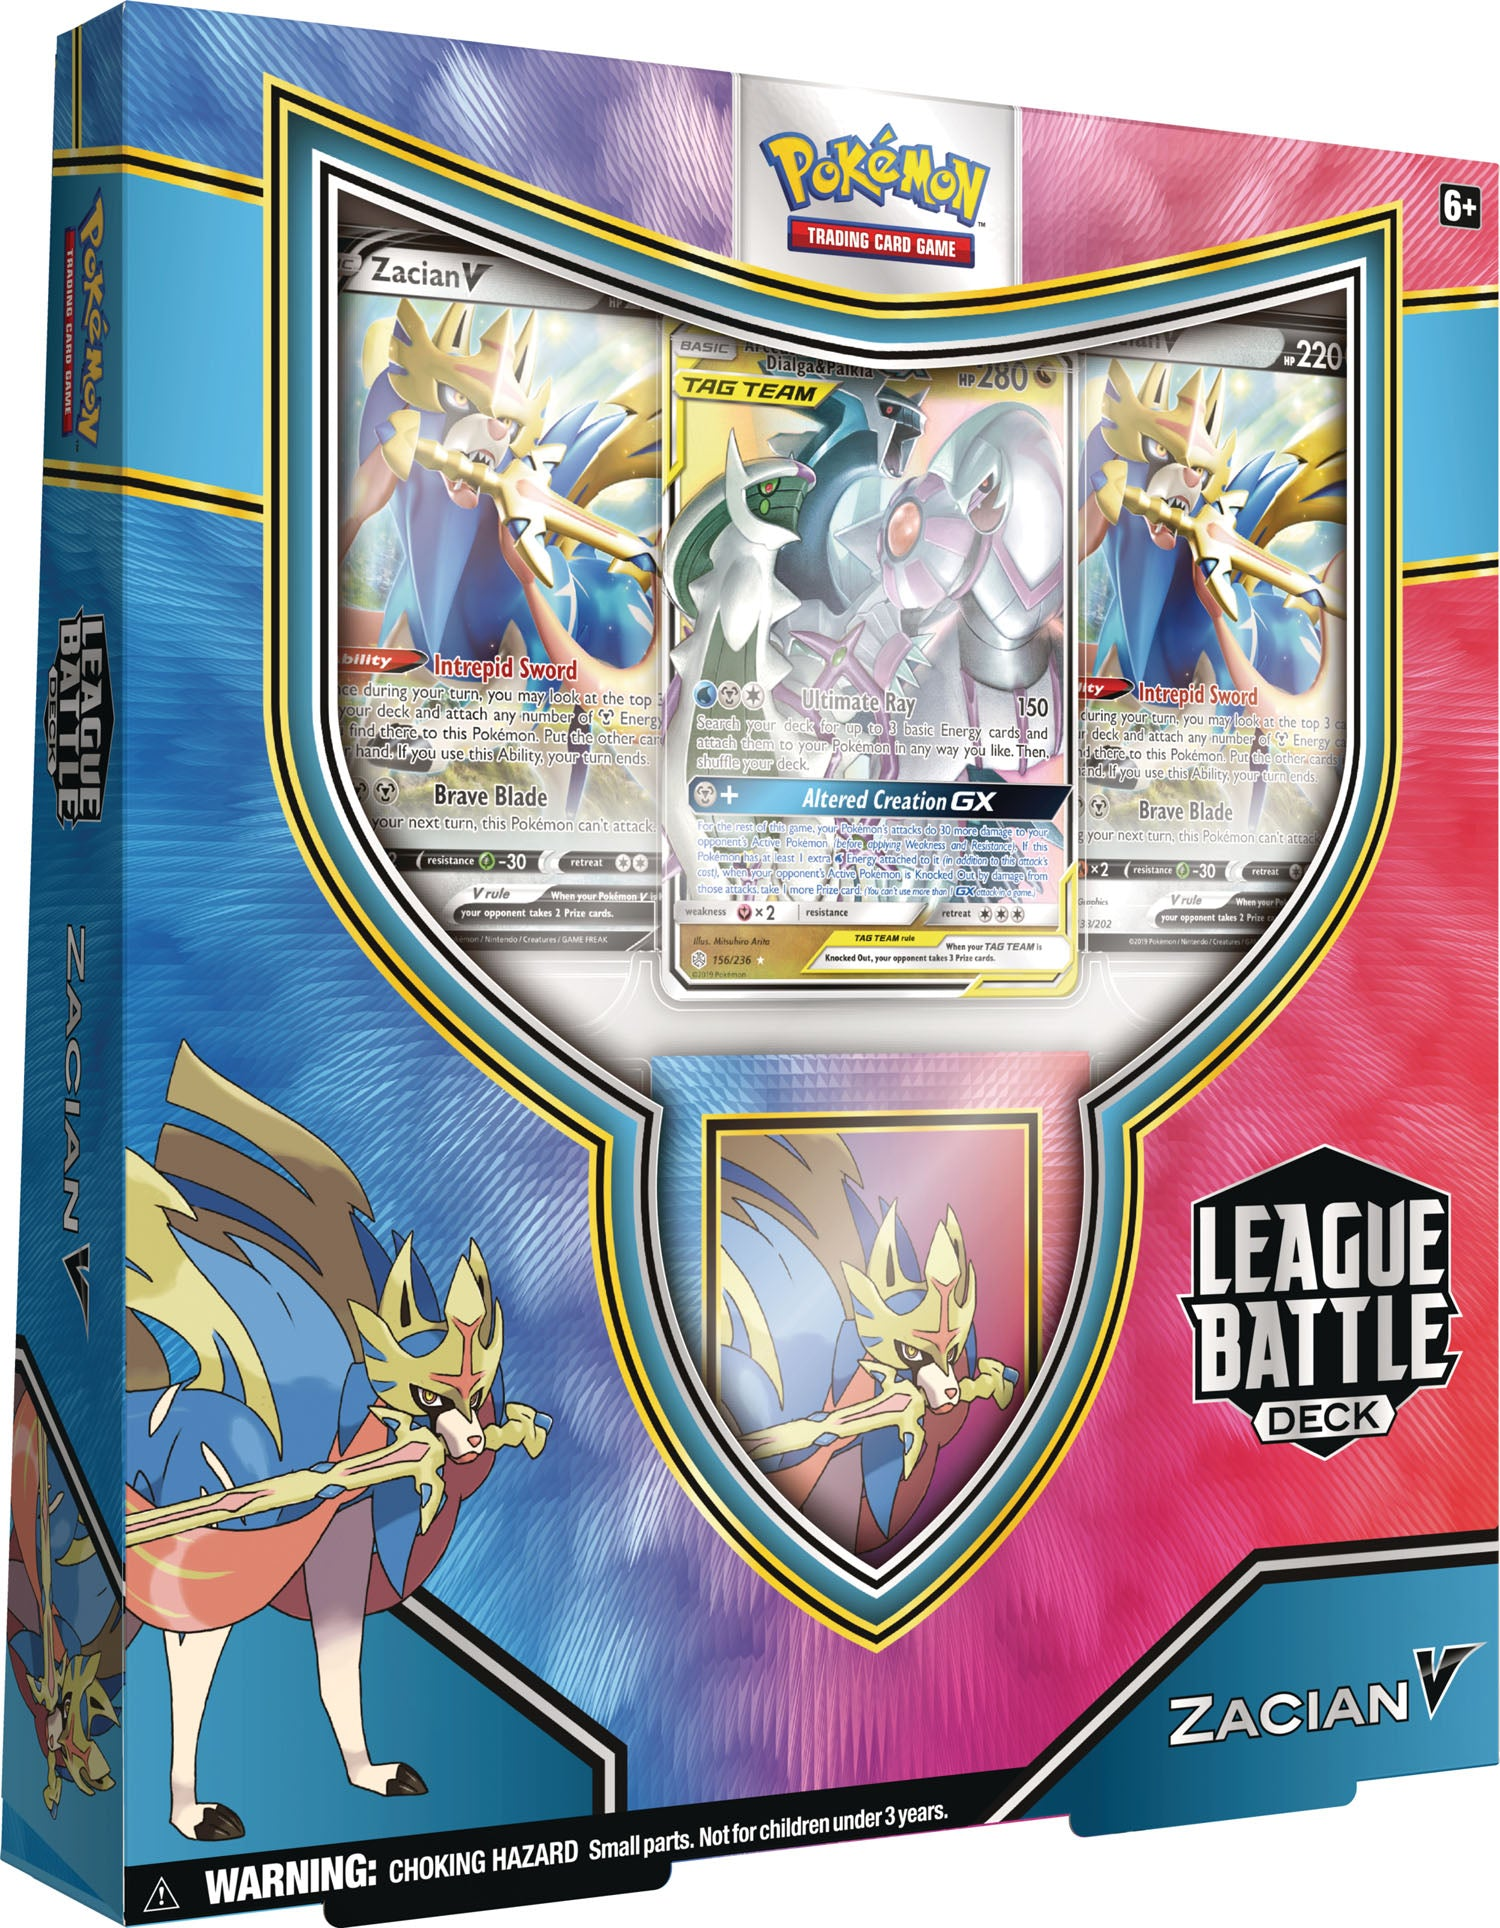 PKM - League Battle Deck - Zacian V